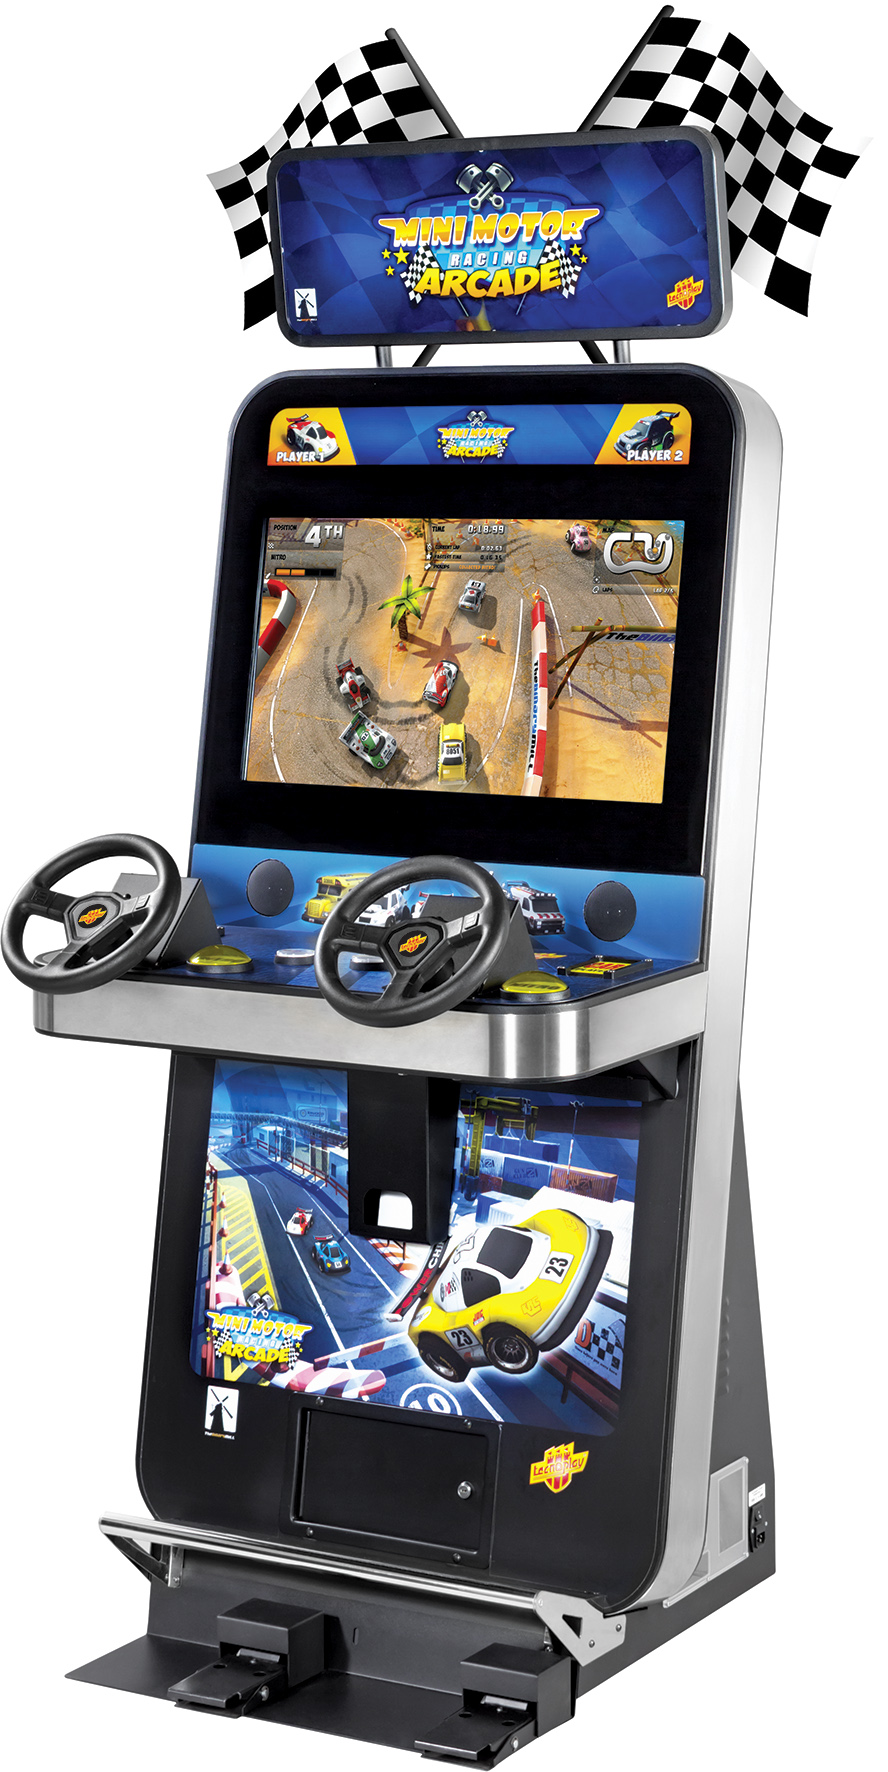 Arcade Heroes New Cabinet Shot And Video Trailer for Mini Motor ...